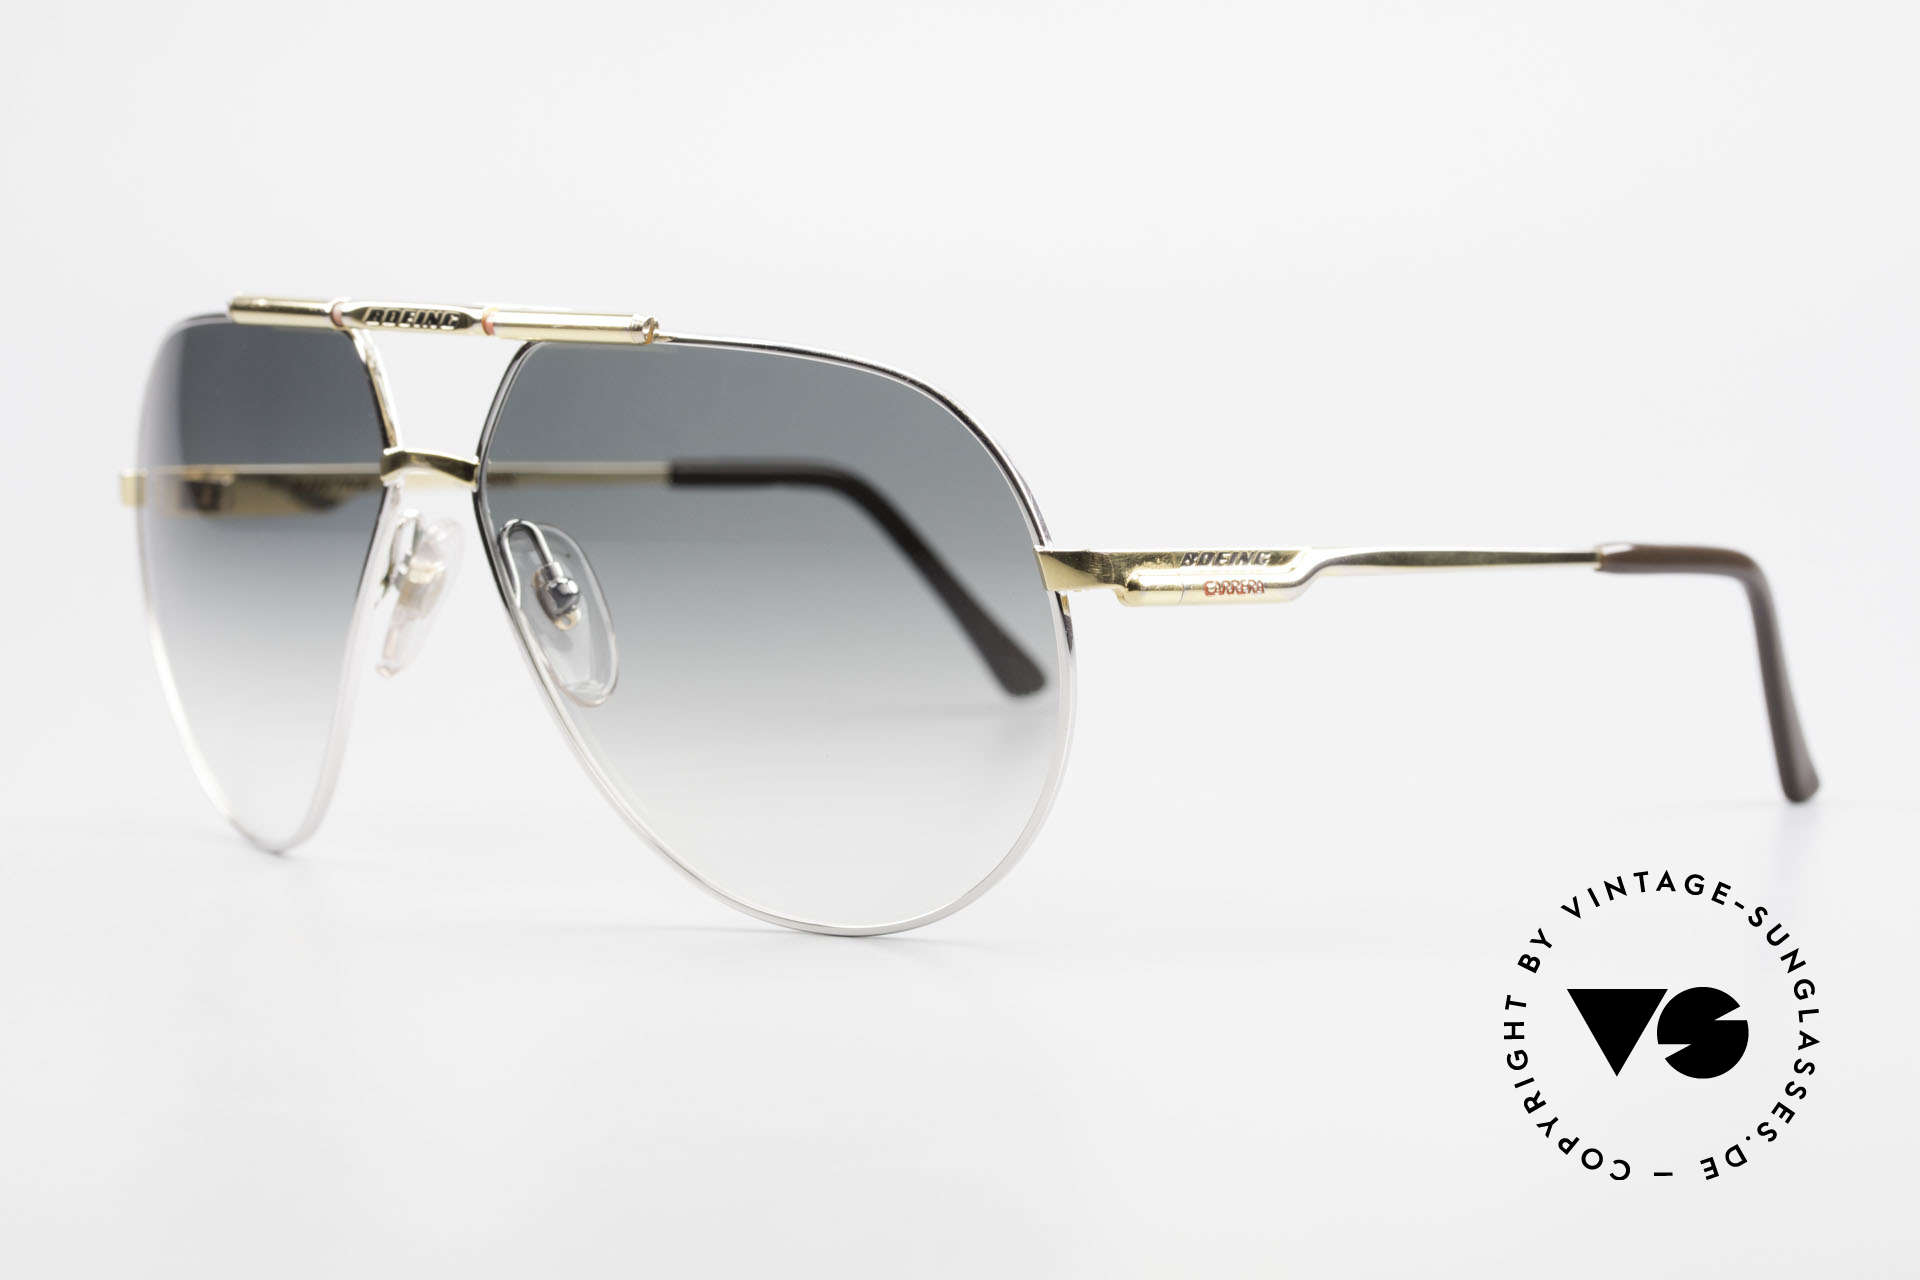 Boeing 5705 Original 80's Pilots Shades, integrated shock-absorbers and self-adjusting pads, Made for Men